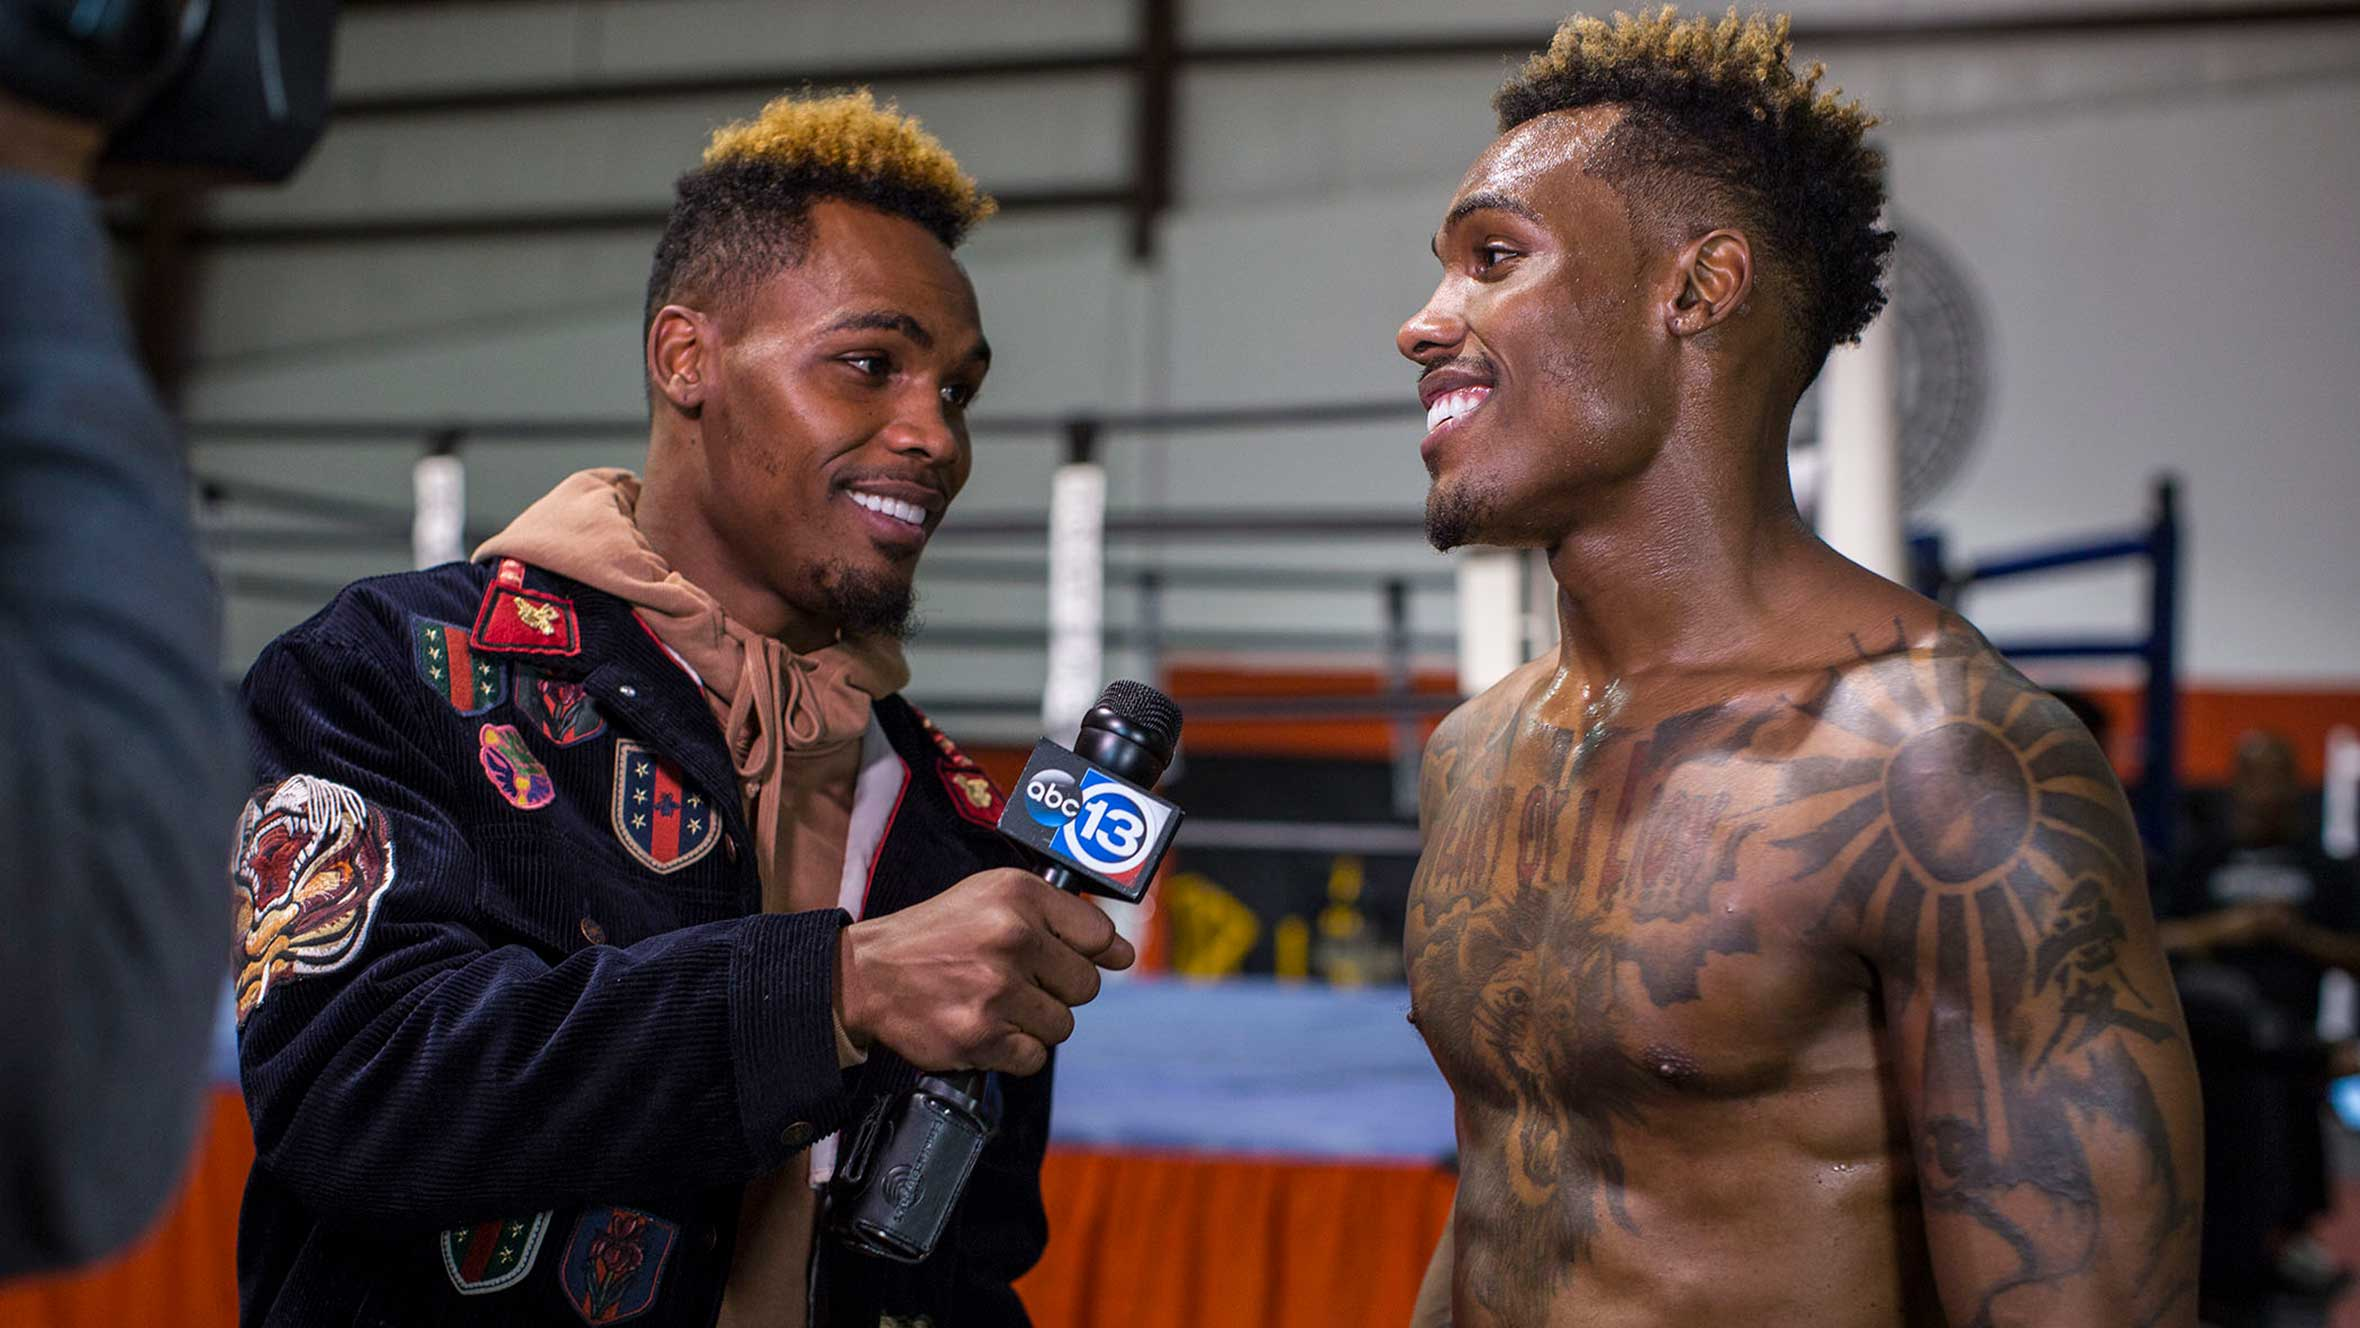 Charlo Twins - The Charlo Twins Against The World